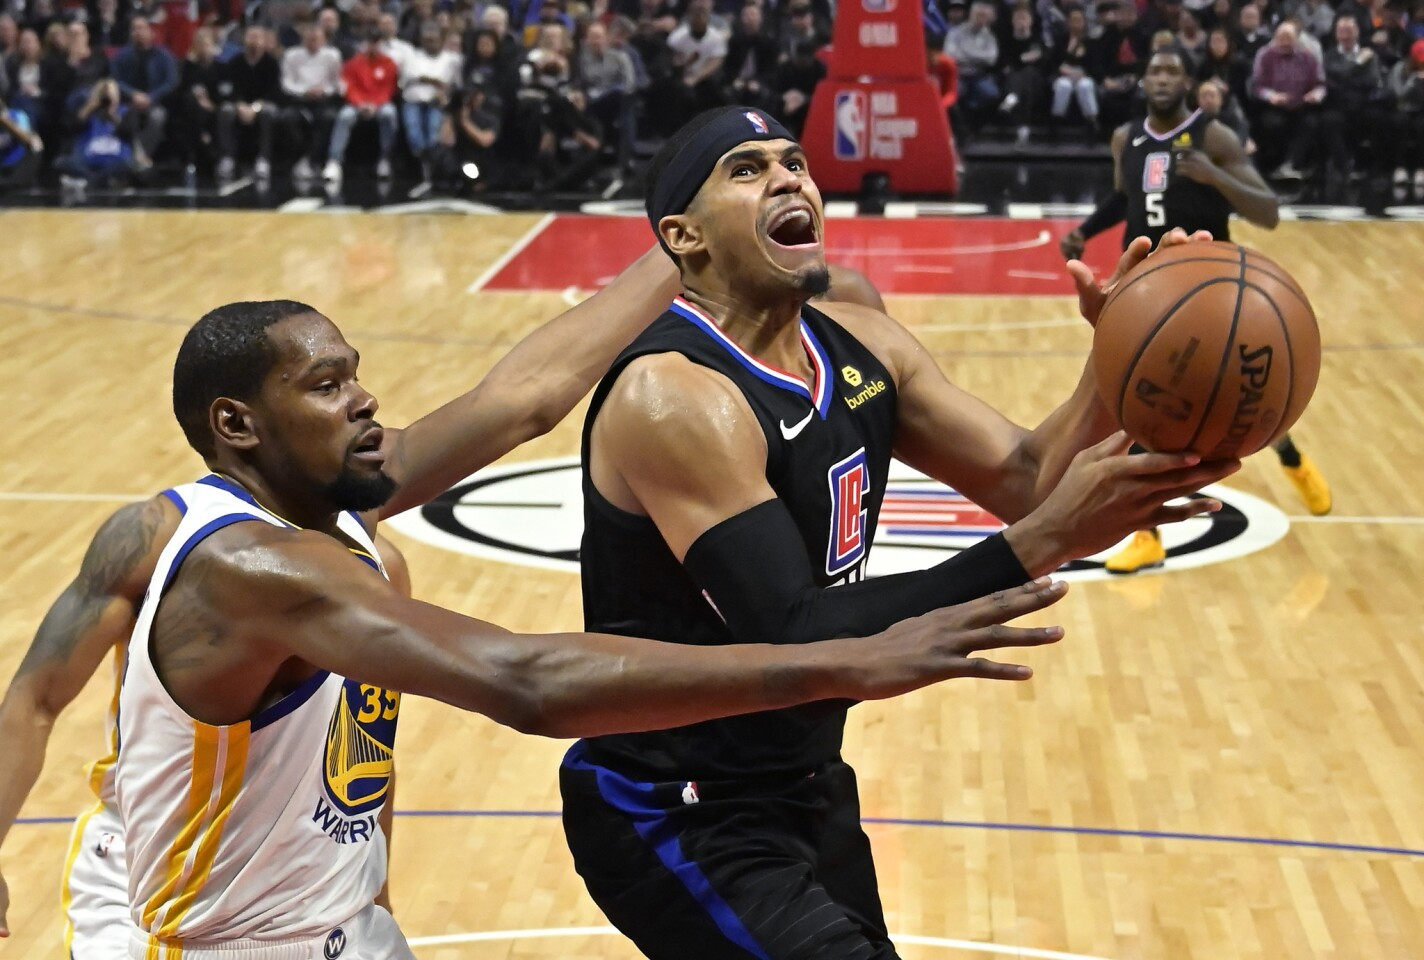 Los Angeles Clippers forward Tobias Harris, right, shoots as Golden State Warriors forward Kevin Durant defends during the second half of an NBA basketball game Friday, Jan. 18, 2019, in Los Angeles. The Warriors won 112-94. (AP Photo/Mark J. Terrill)